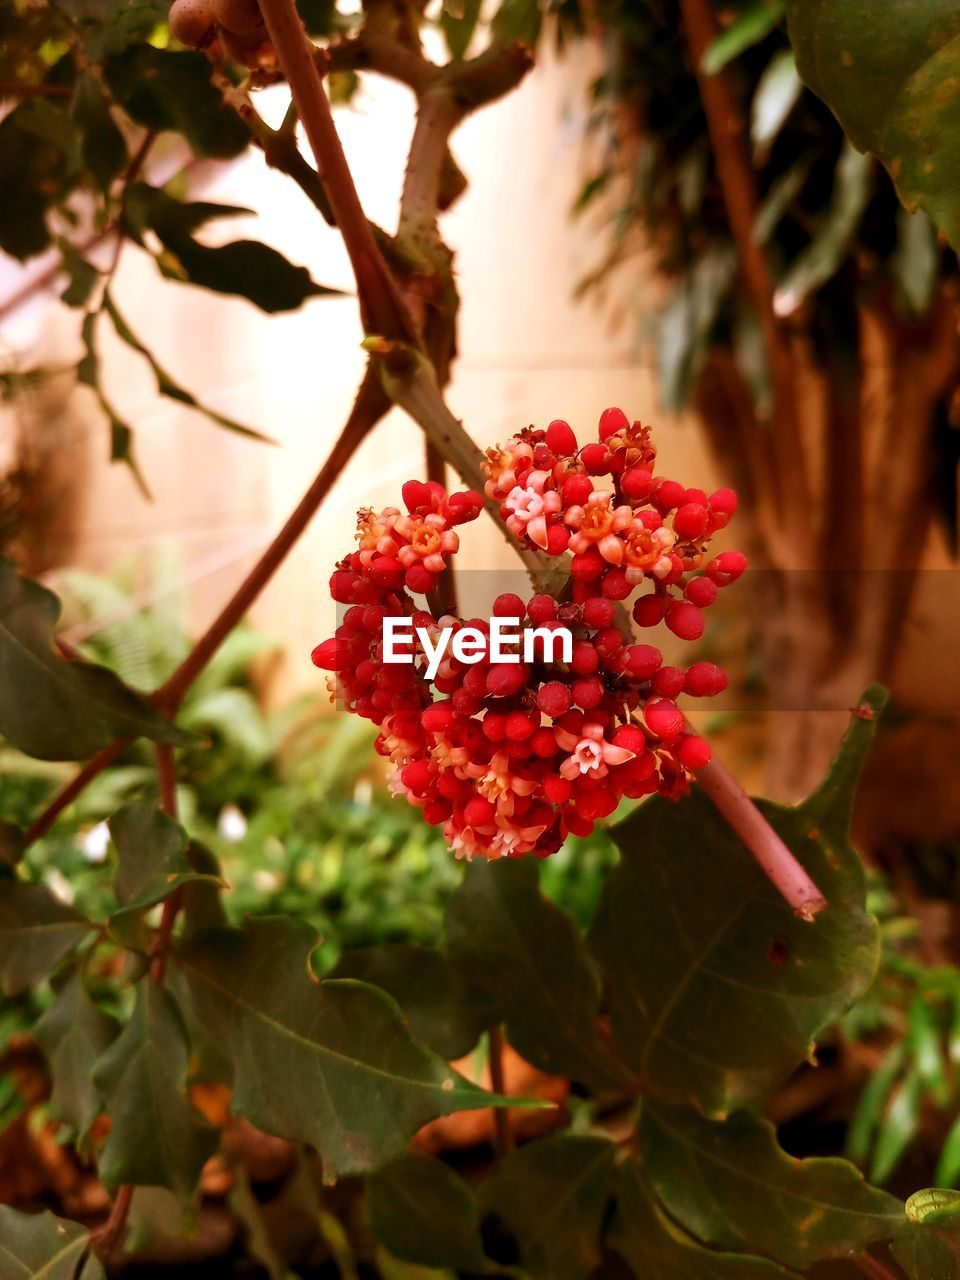 growth, beauty in nature, flower, nature, freshness, red, fragility, plant, petal, outdoors, day, no people, focus on foreground, close-up, leaf, blooming, flower head, tree